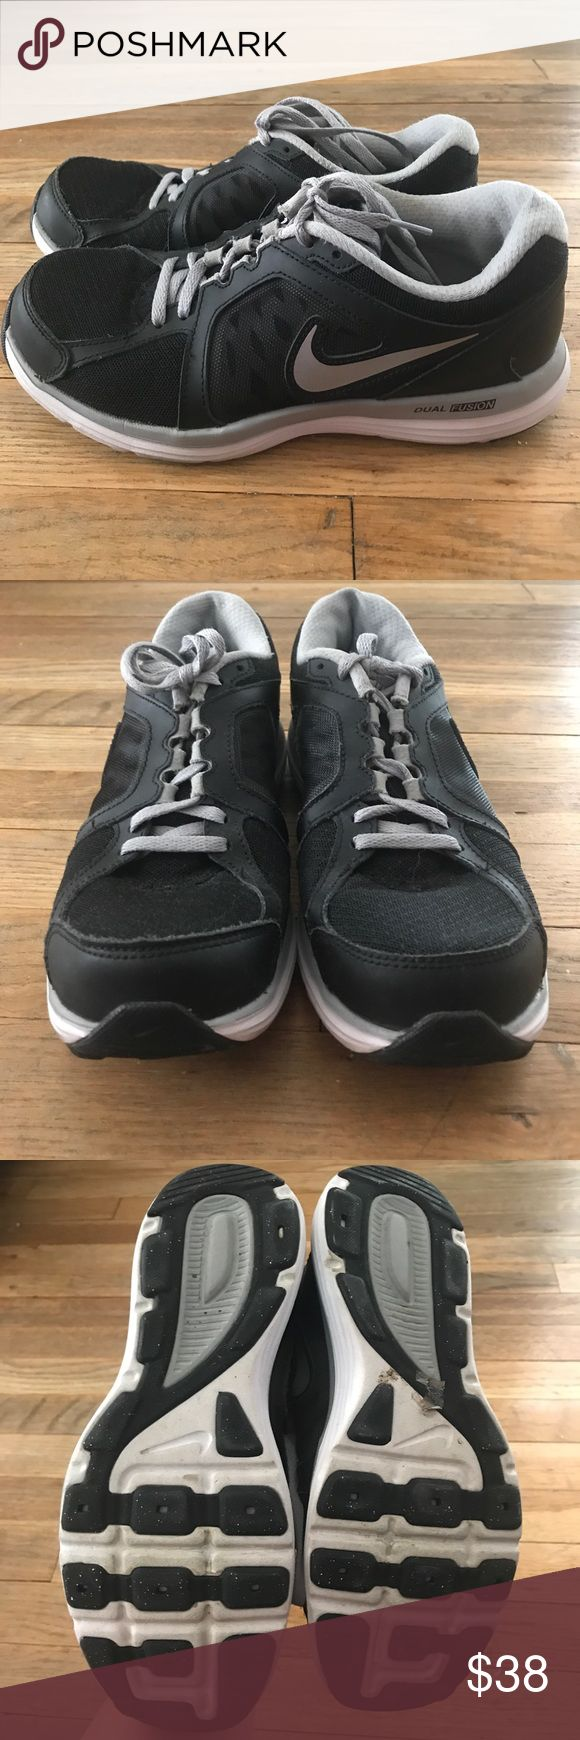 Nike Dual Fusion st3 sz 7 Nike Dual fusion st3 in black and grey.  Supportive, comfy, and stylish. Gently loved with no flaws or damages. Just need a little  cleaning but in great condition! Nike Shoes Athletic Shoes